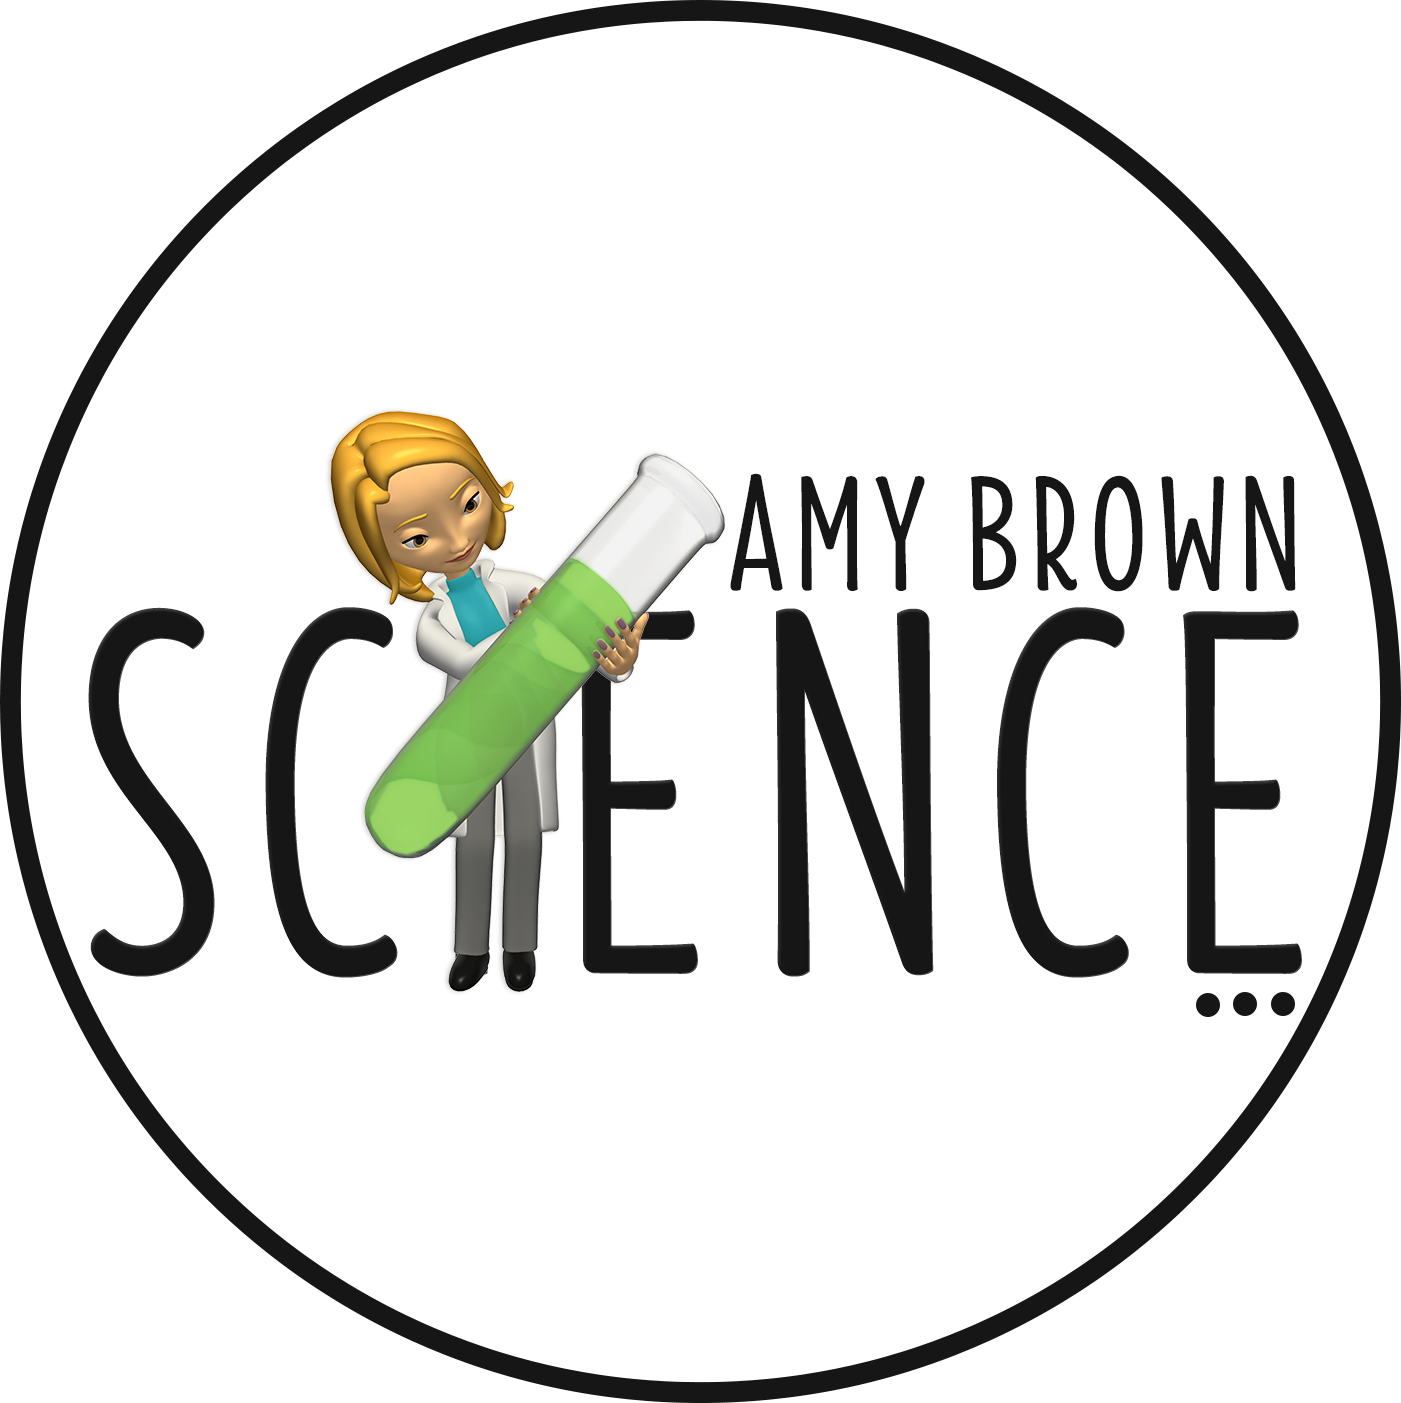 science amy brown study worksheet lab biology scientific stuff method guide compare organizer graphic homework skill daphnia careers dna ecology